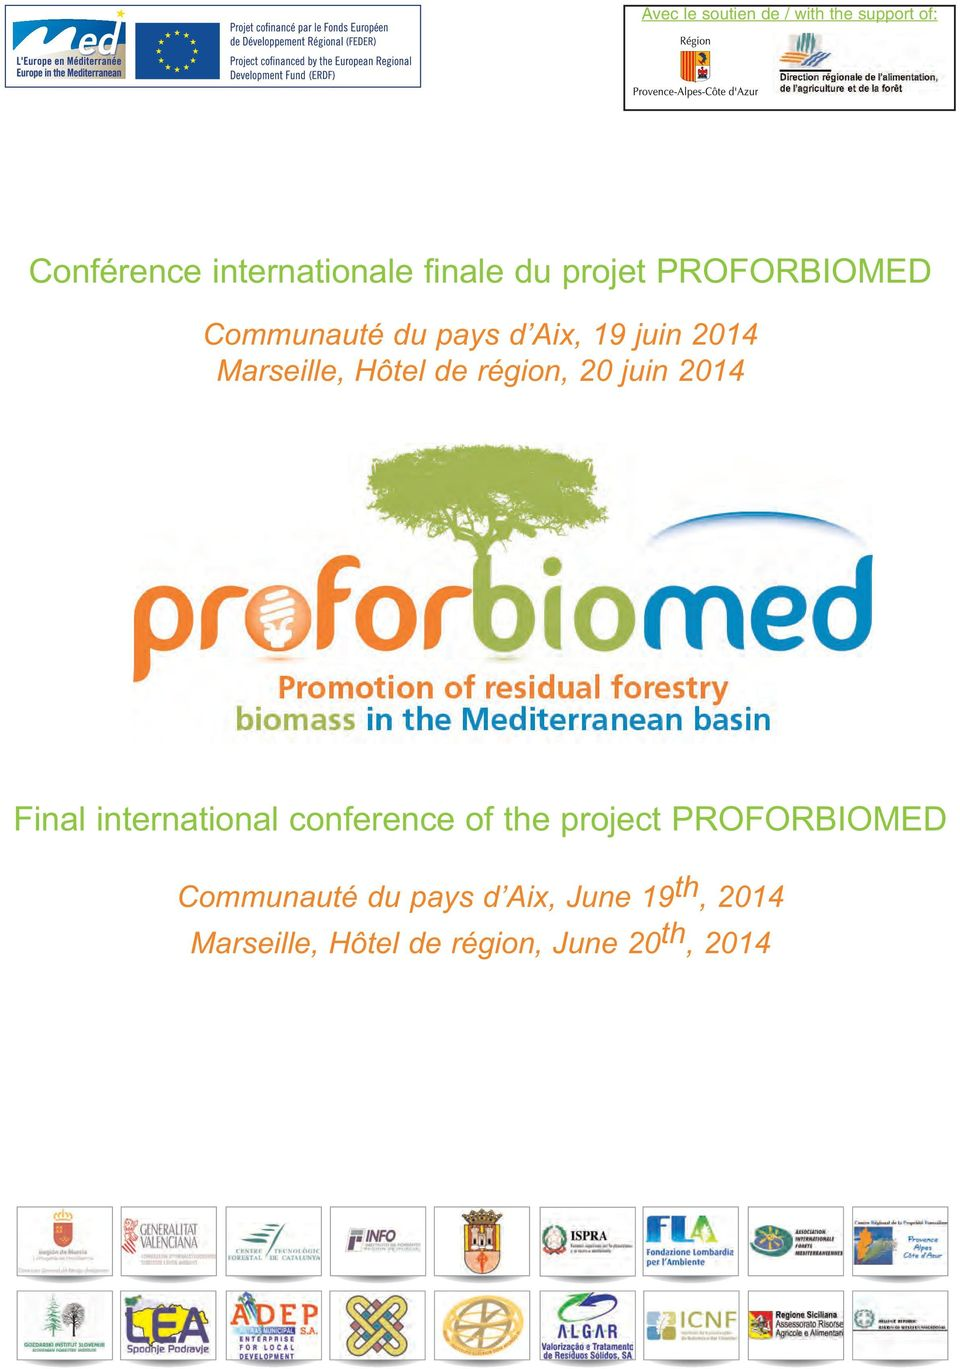 région, 20 juin 2014 Final international conference of the project PROFORBIOMED